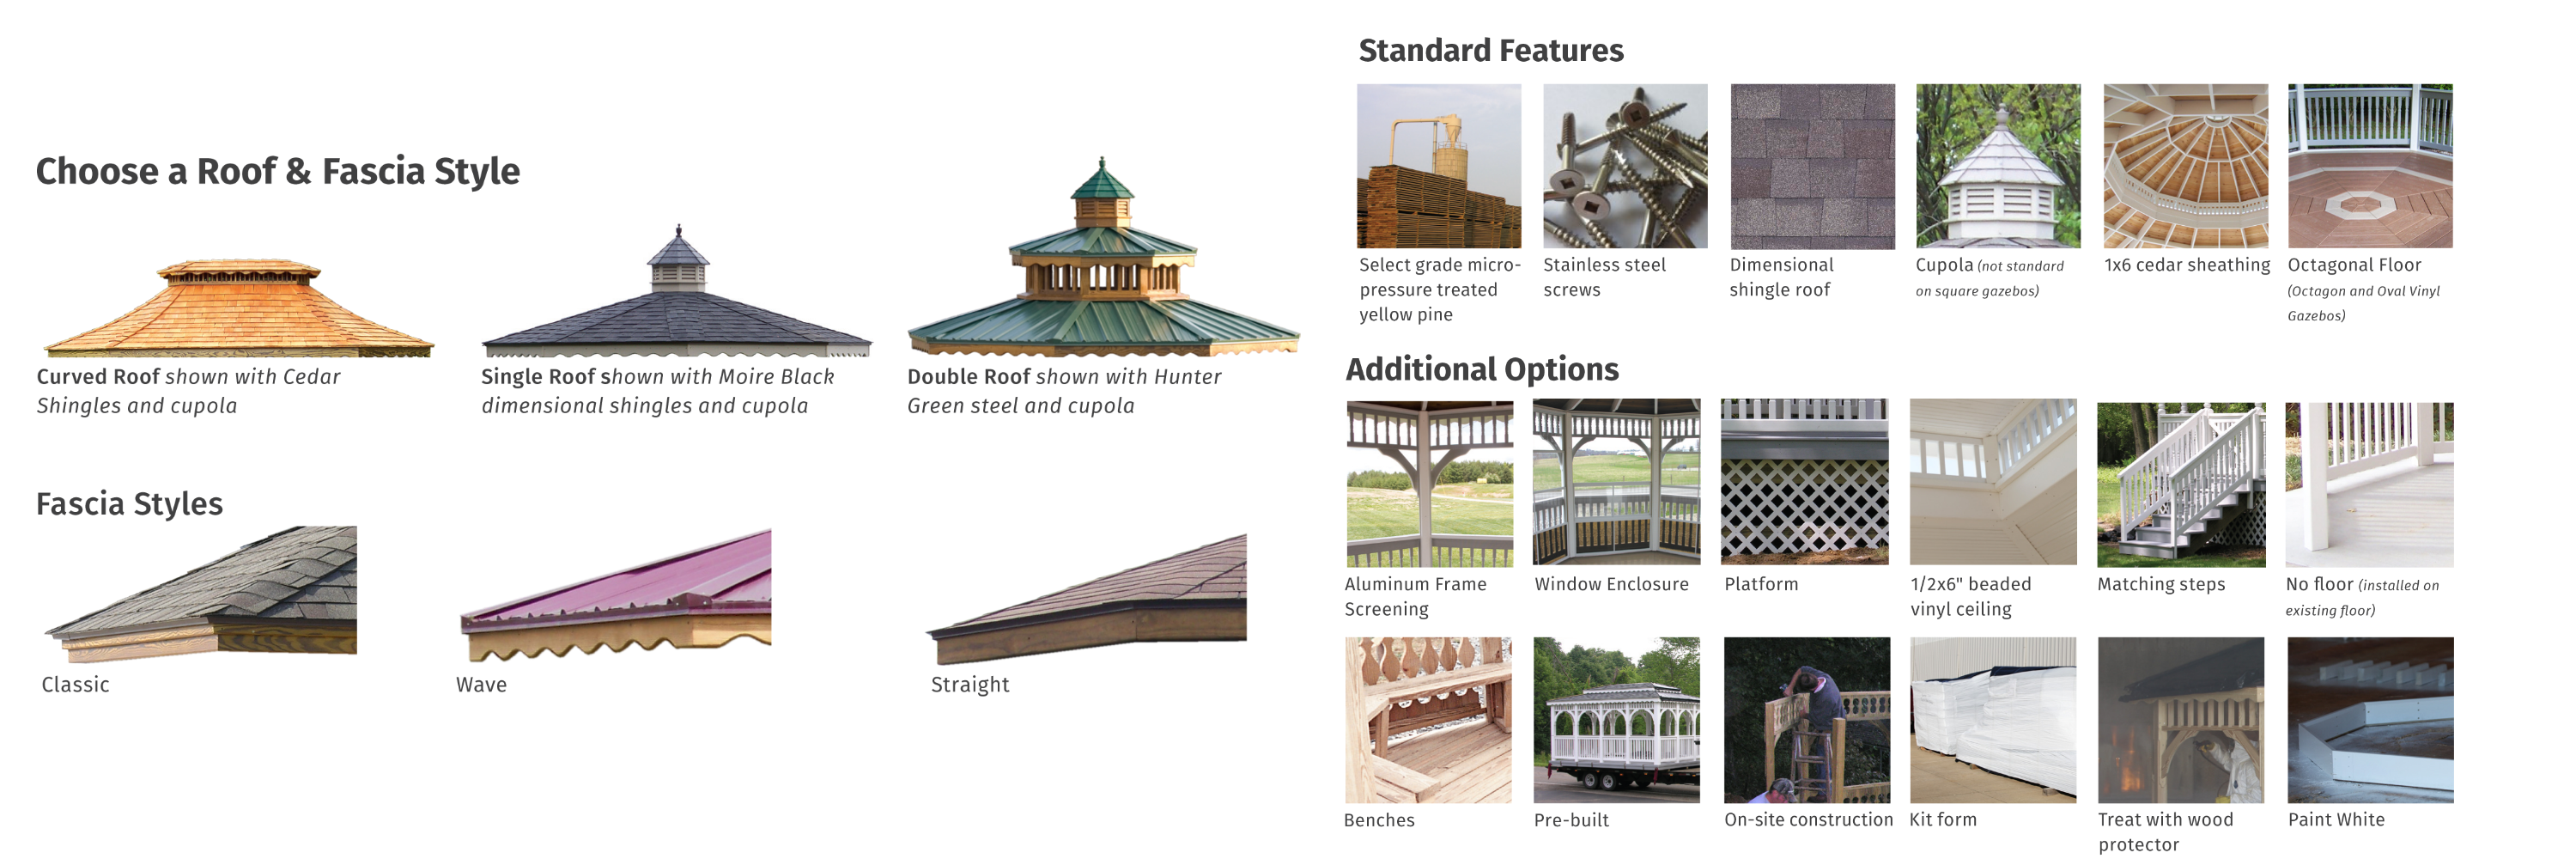 roof-and-features-and-options-for-website-2019-1.png